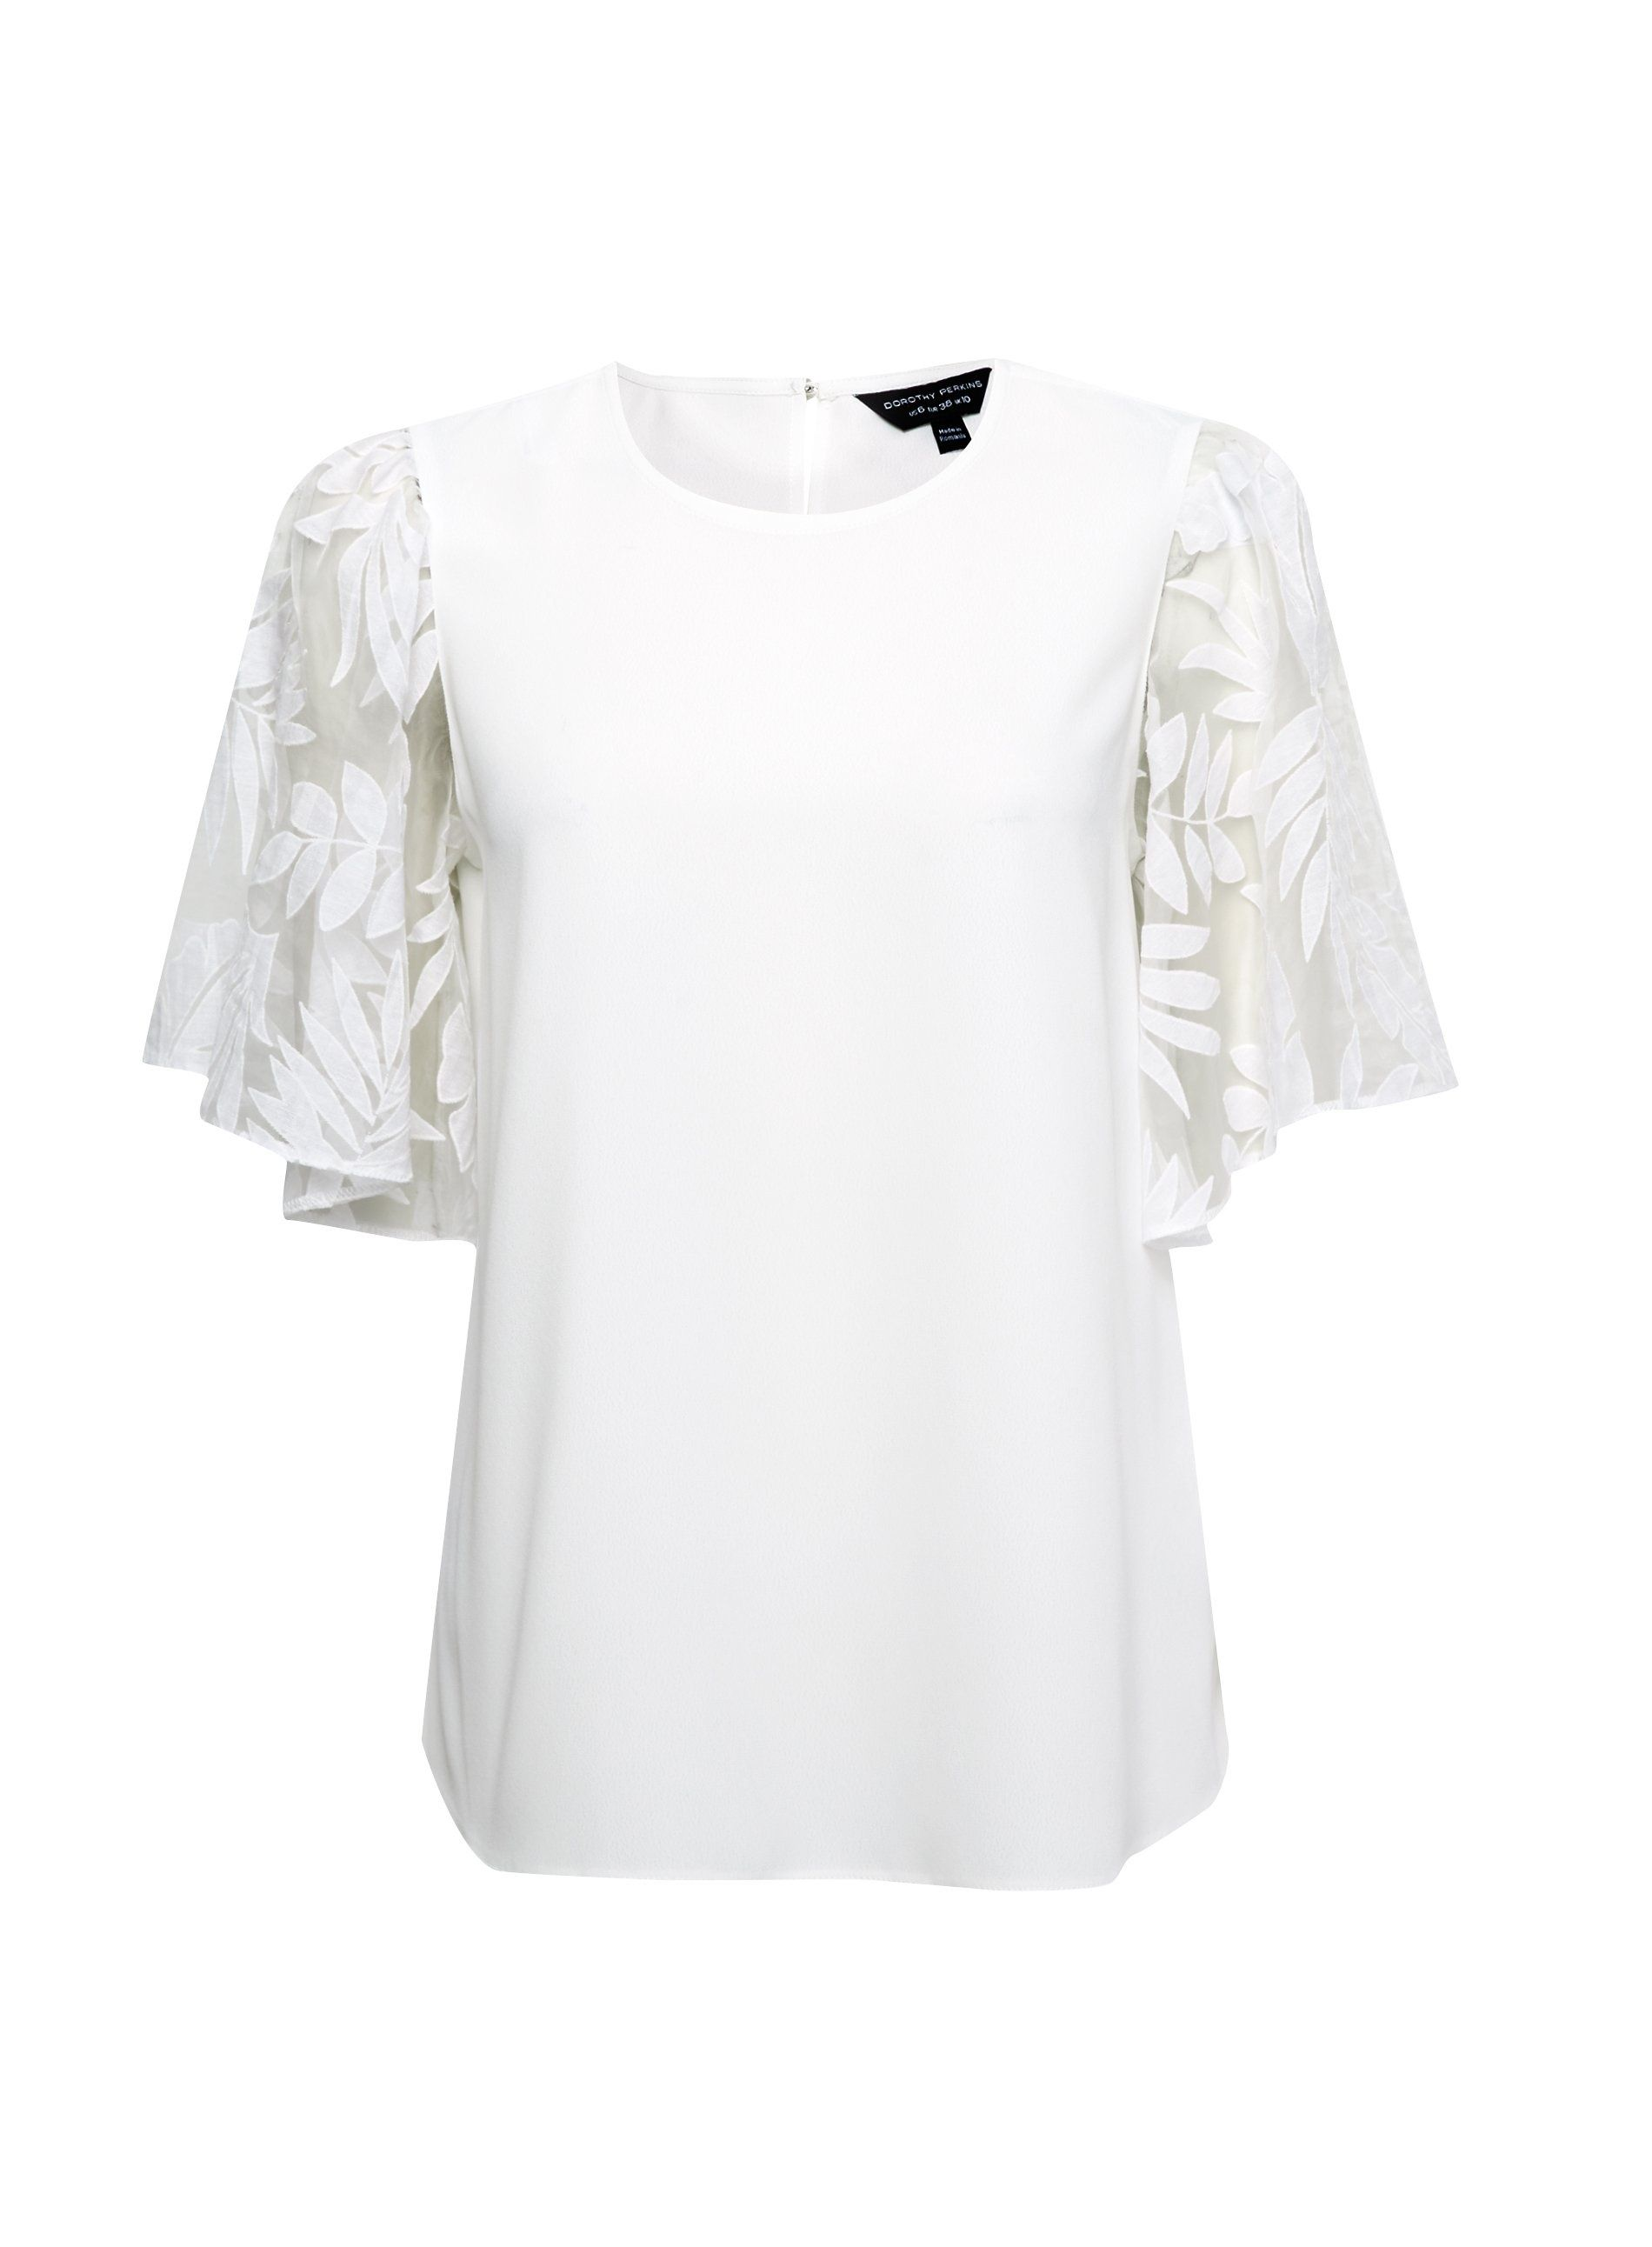 Dorothy Perkins Womens Ivory Organza Short Sleeve Top Round Neck Blouse